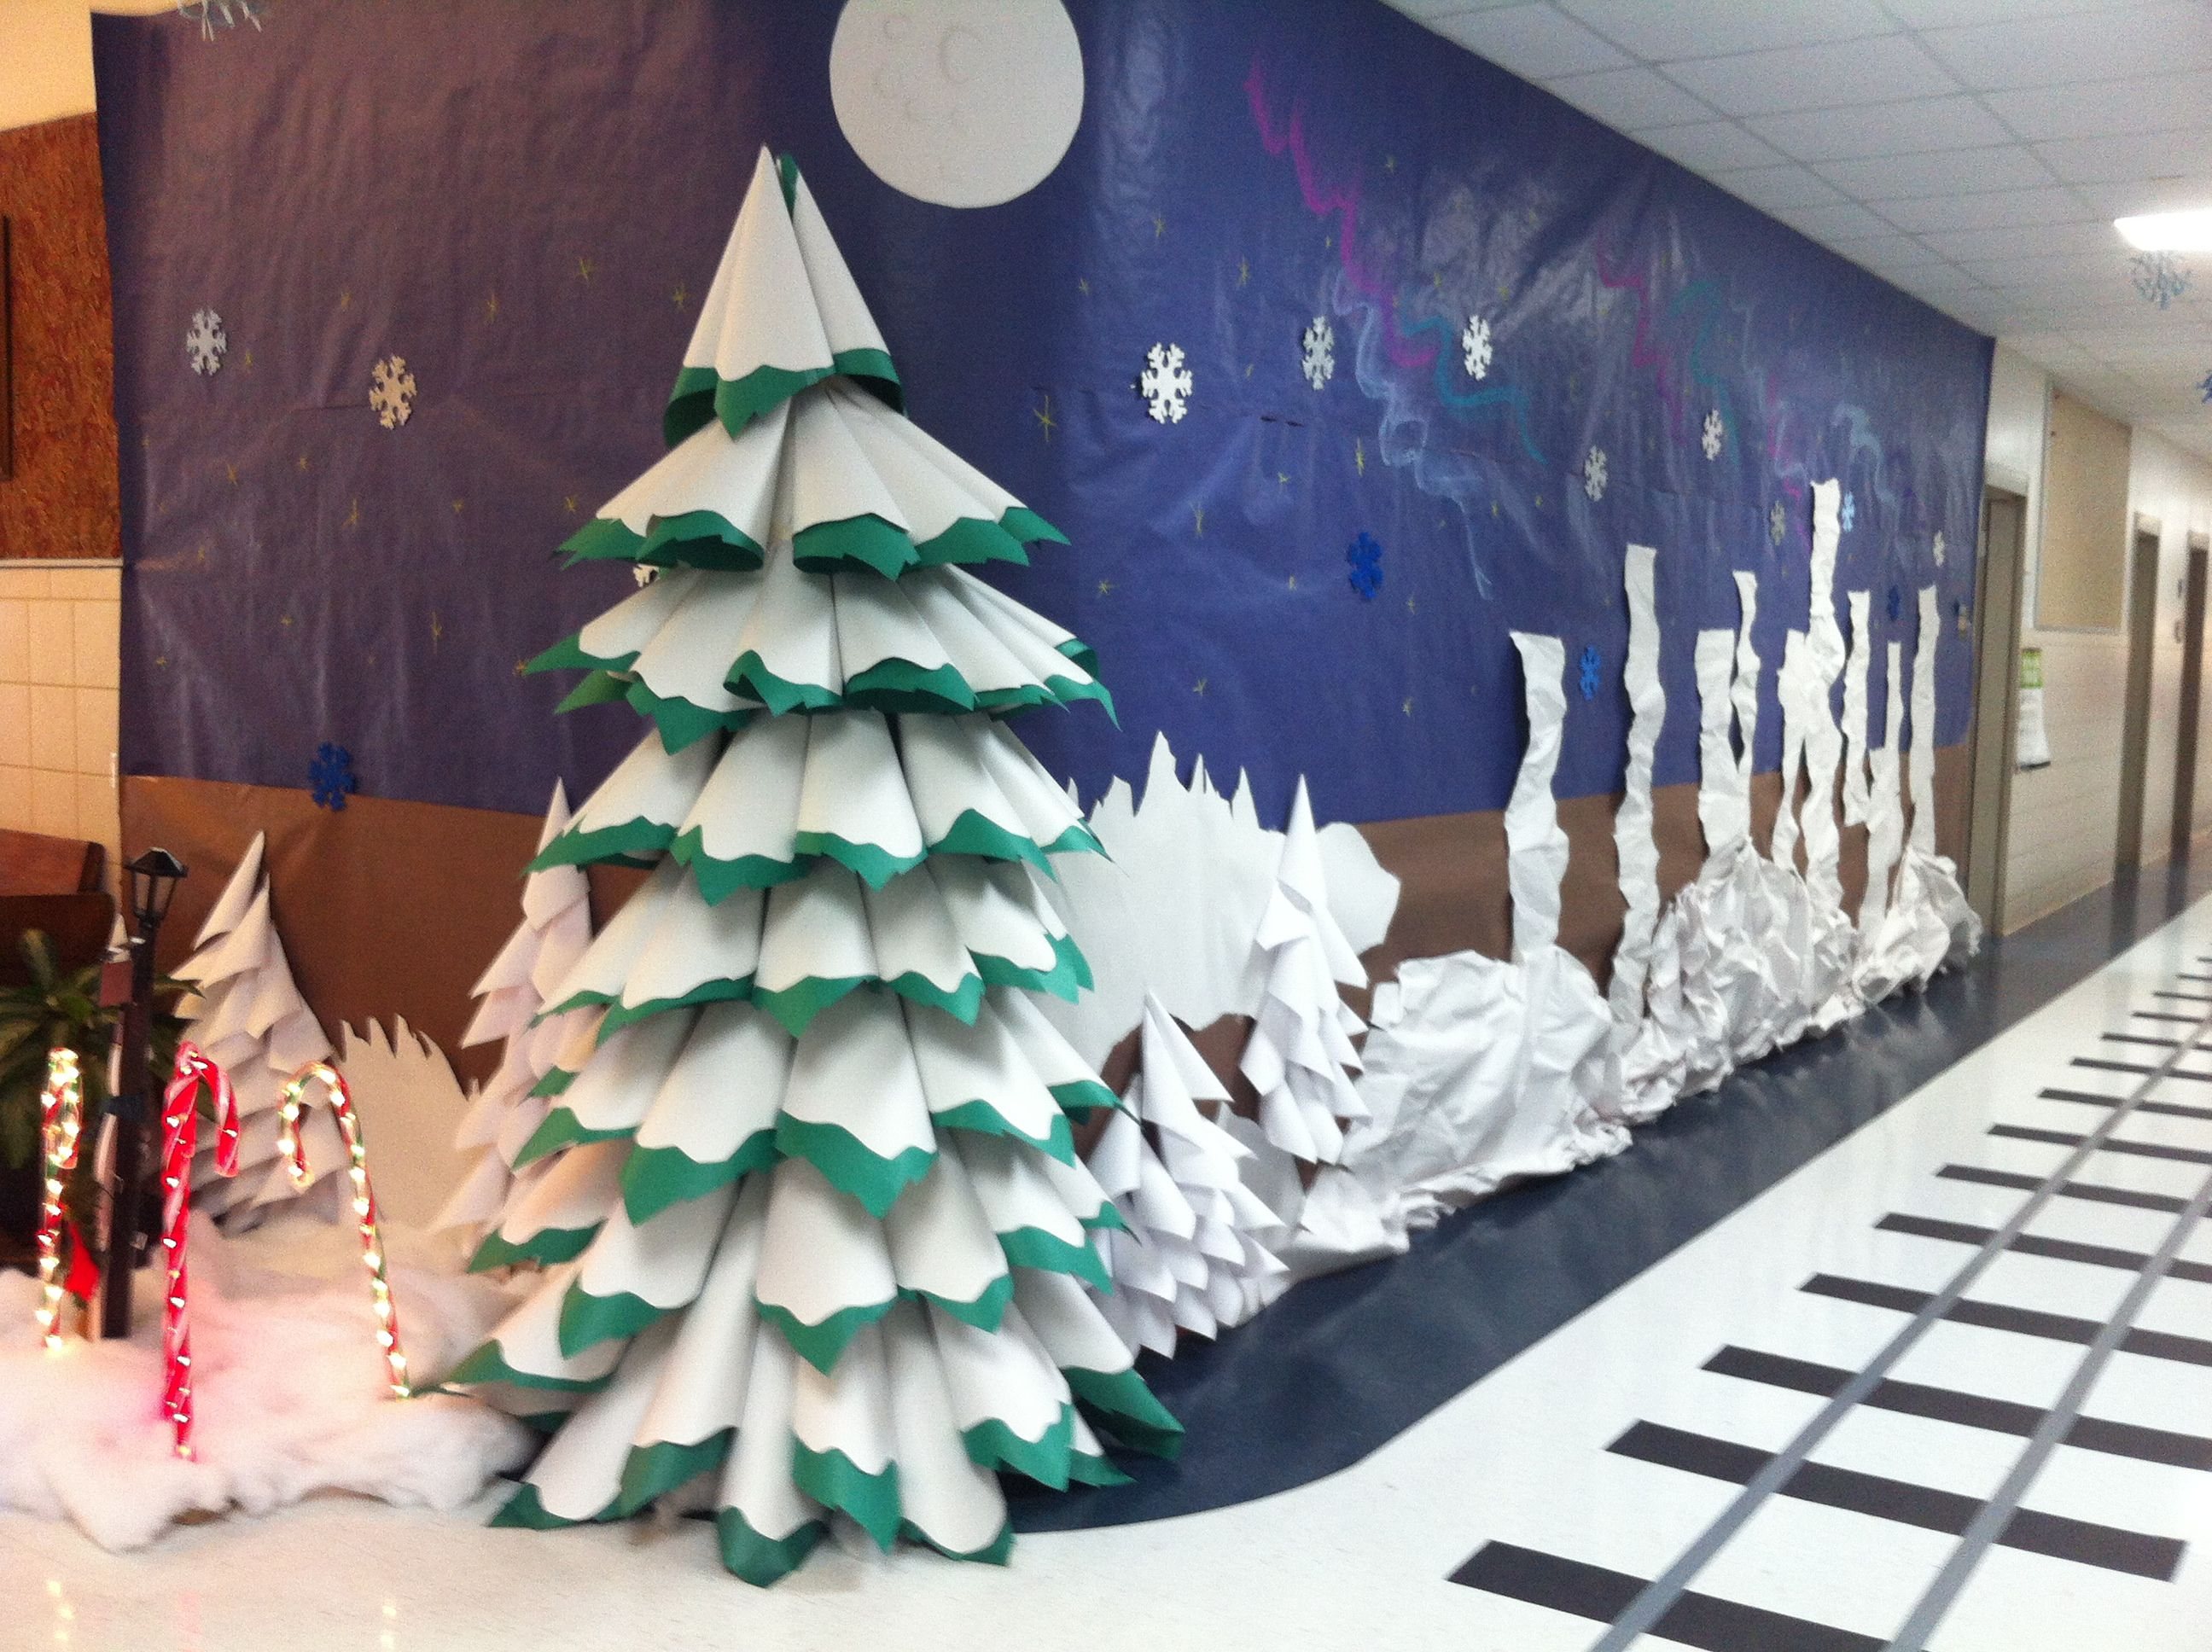 Paper 3d Christmas tree. Polar Express hallway decorations